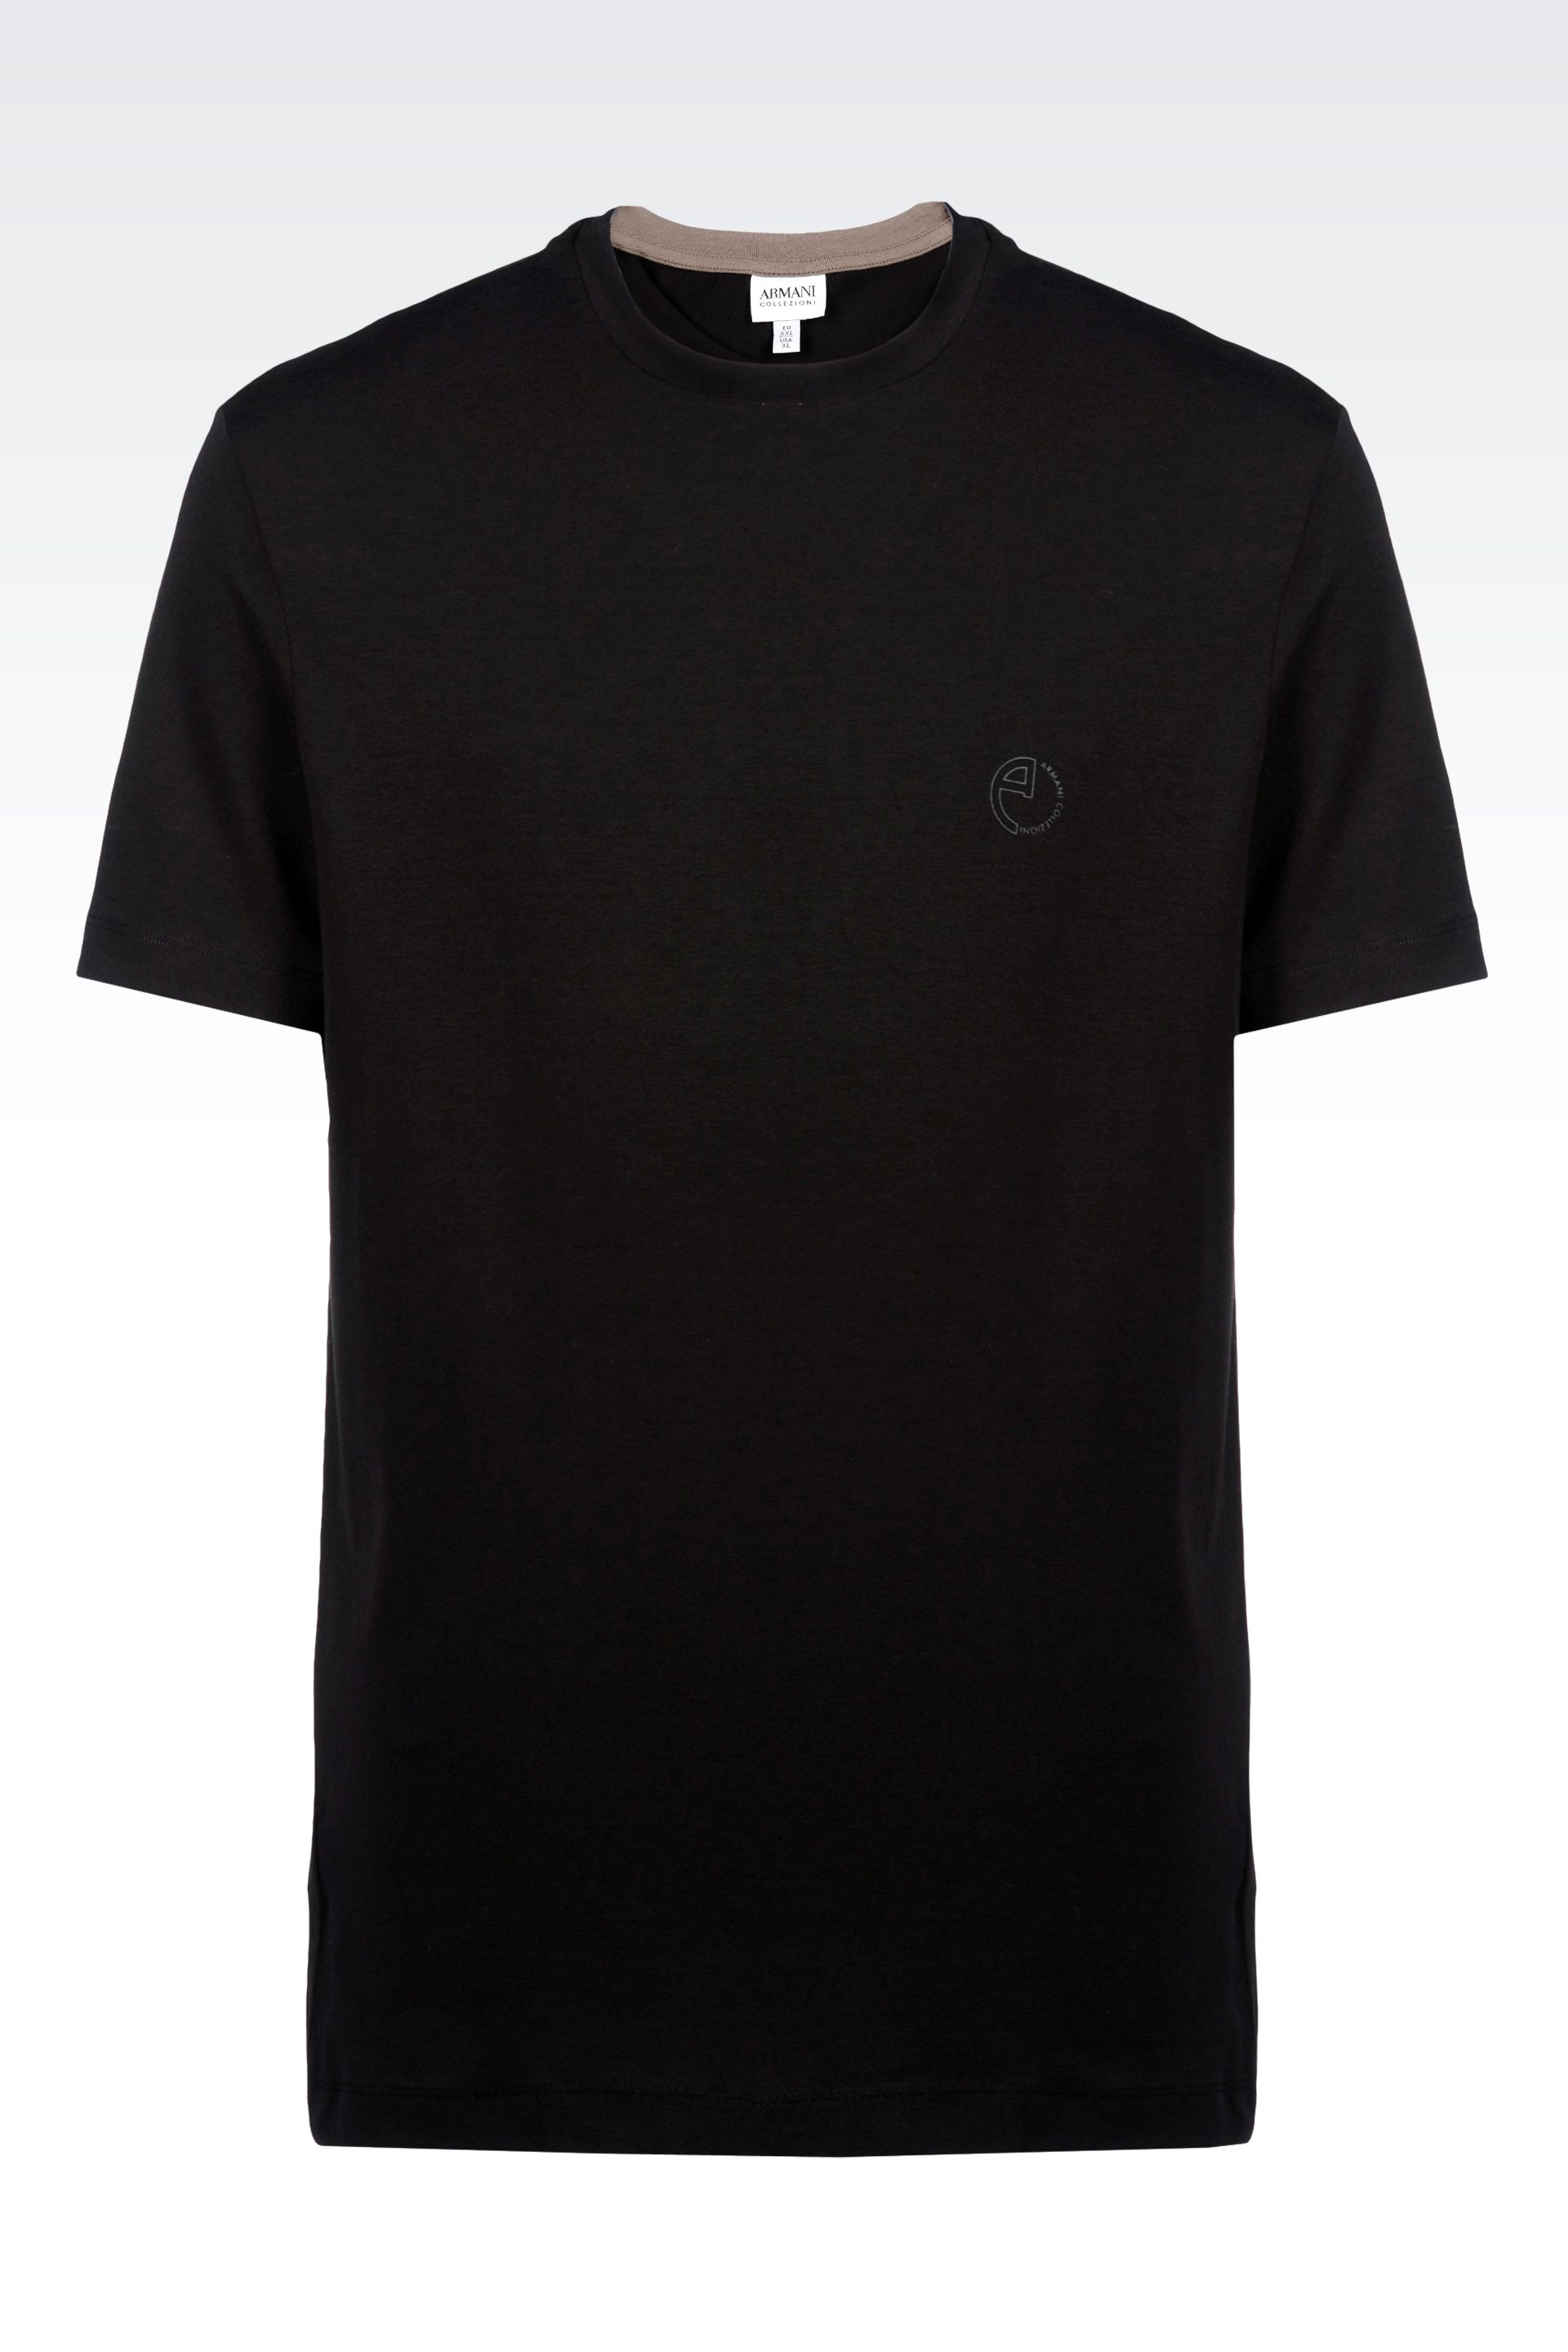 armani t shirt in single jersey in black for men lyst. Black Bedroom Furniture Sets. Home Design Ideas